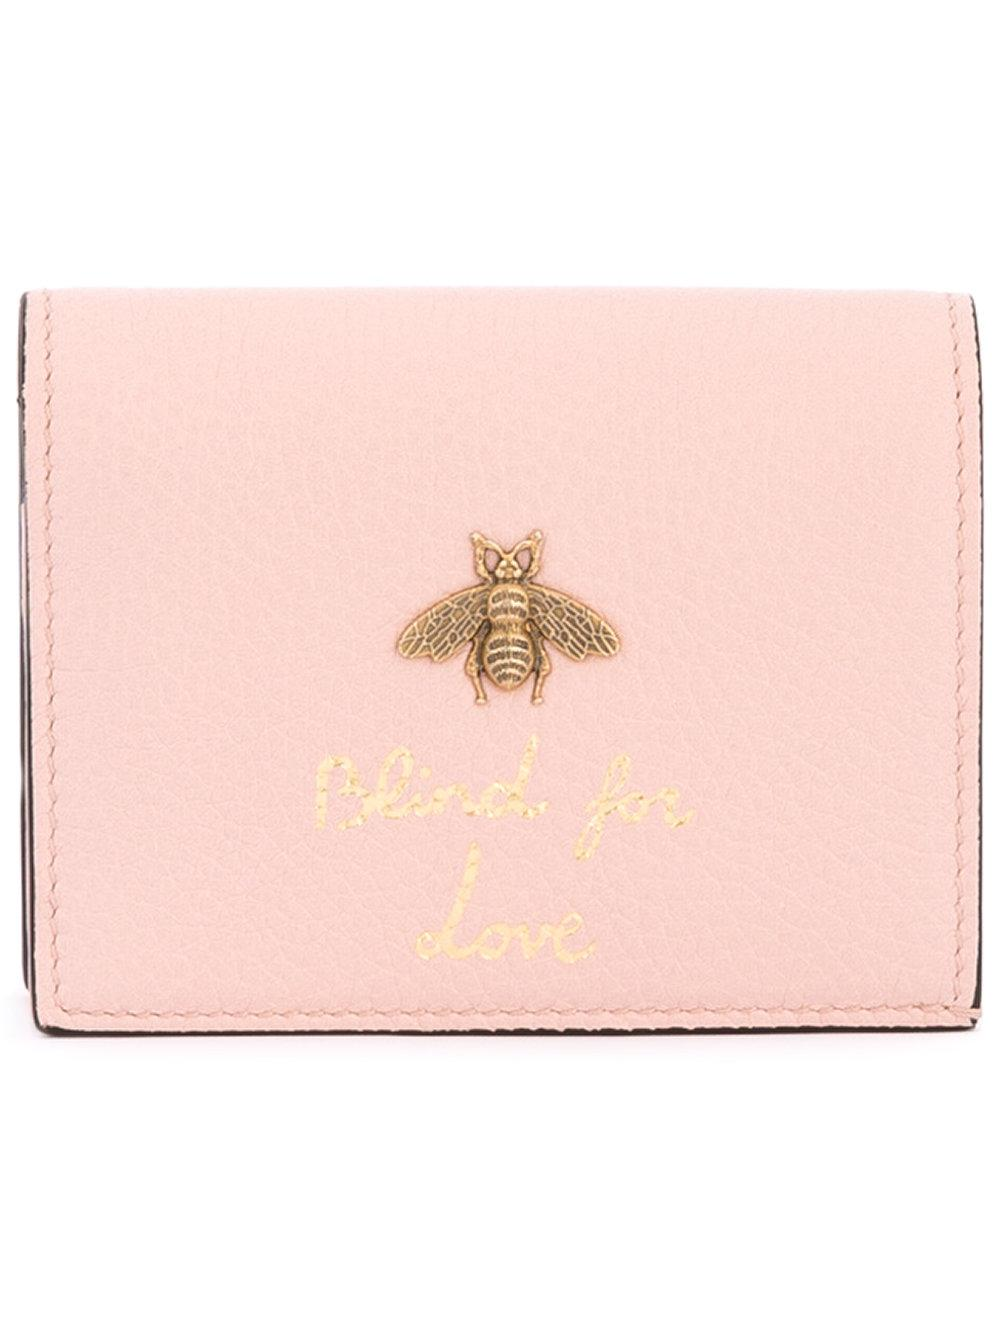 9fb741ef752d Gucci 'blind For Love' Wallet in Pink - Lyst